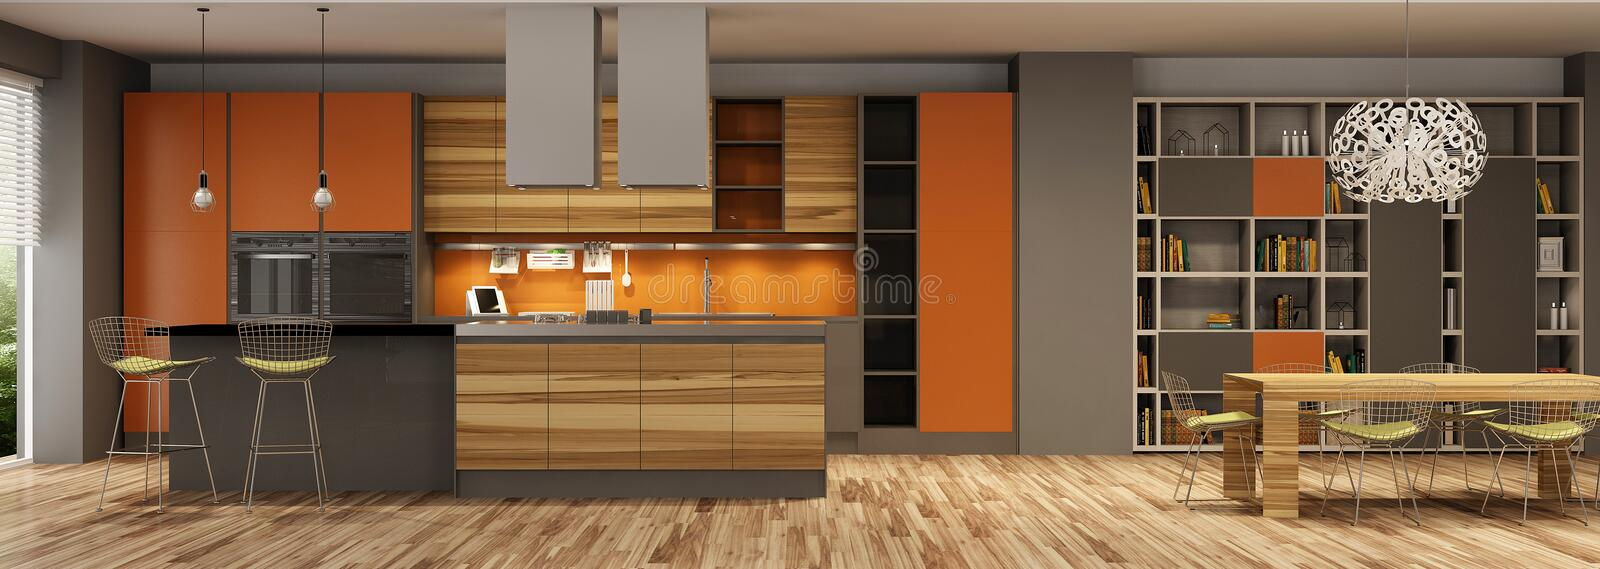 Modern house interior of living room and a kitchen in beige and orange colors. Modern house interior of living room and a kitchen in beige and orange colors in royalty free stock photo